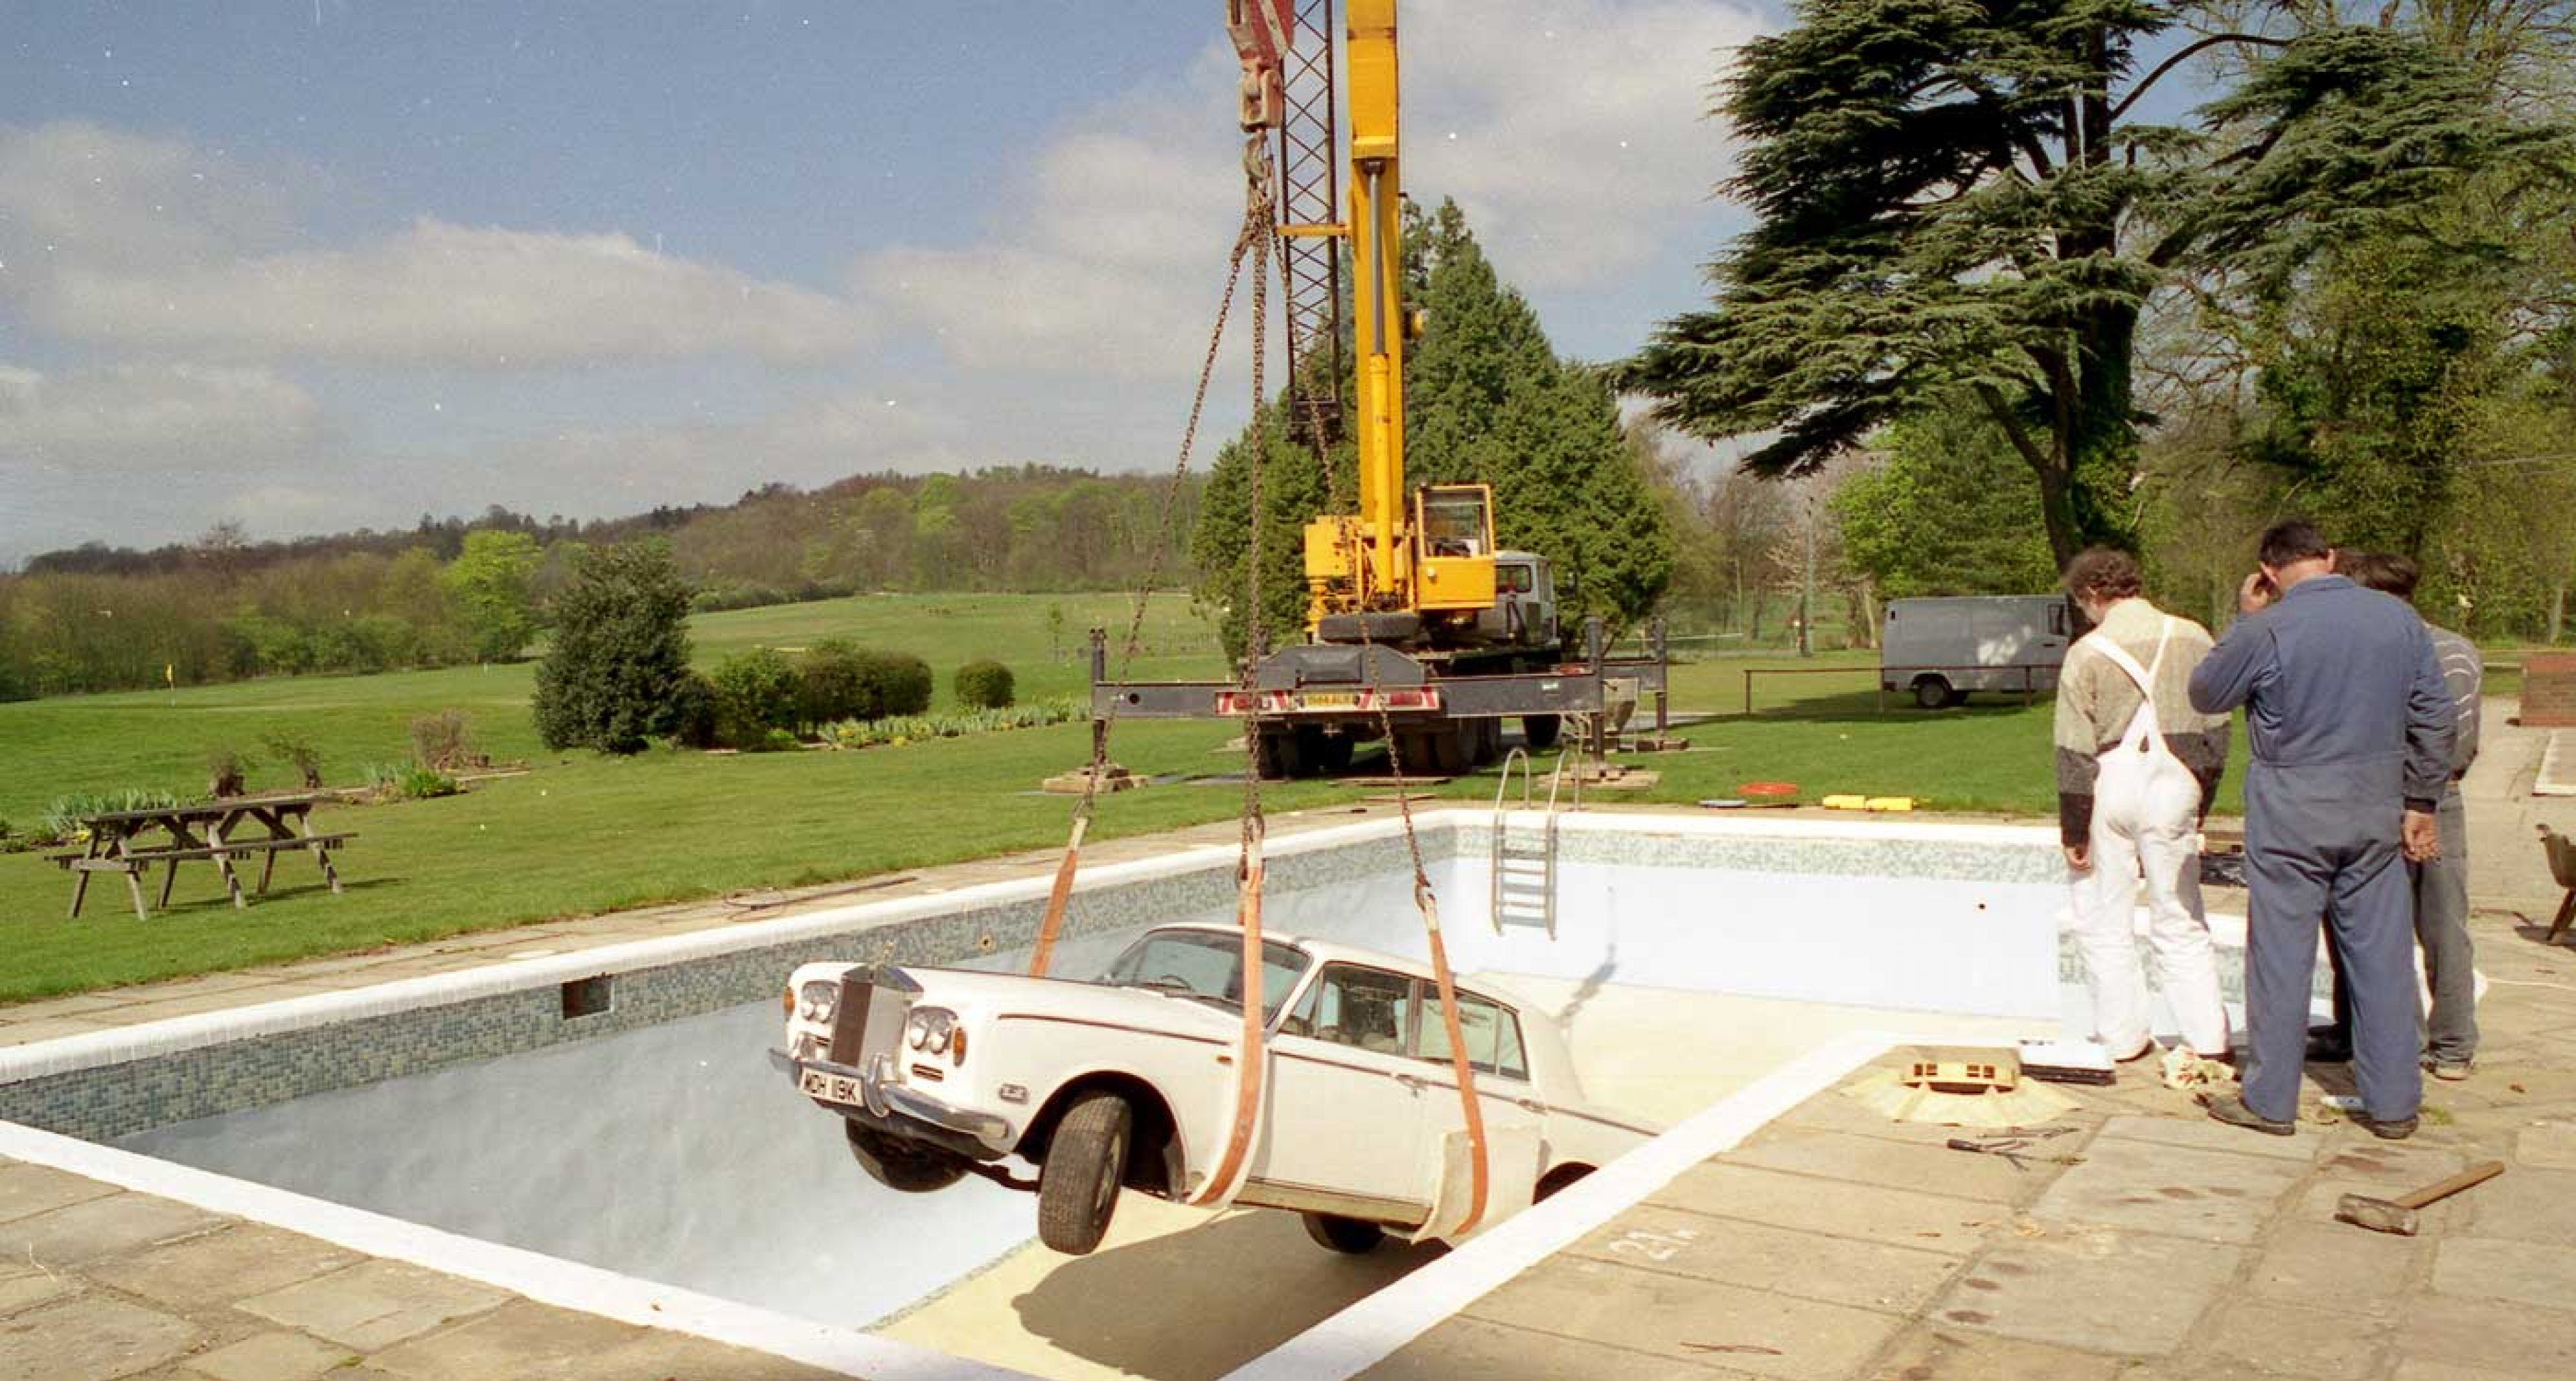 A heavy-duty crane was used to lower the Rolls into the empty pool